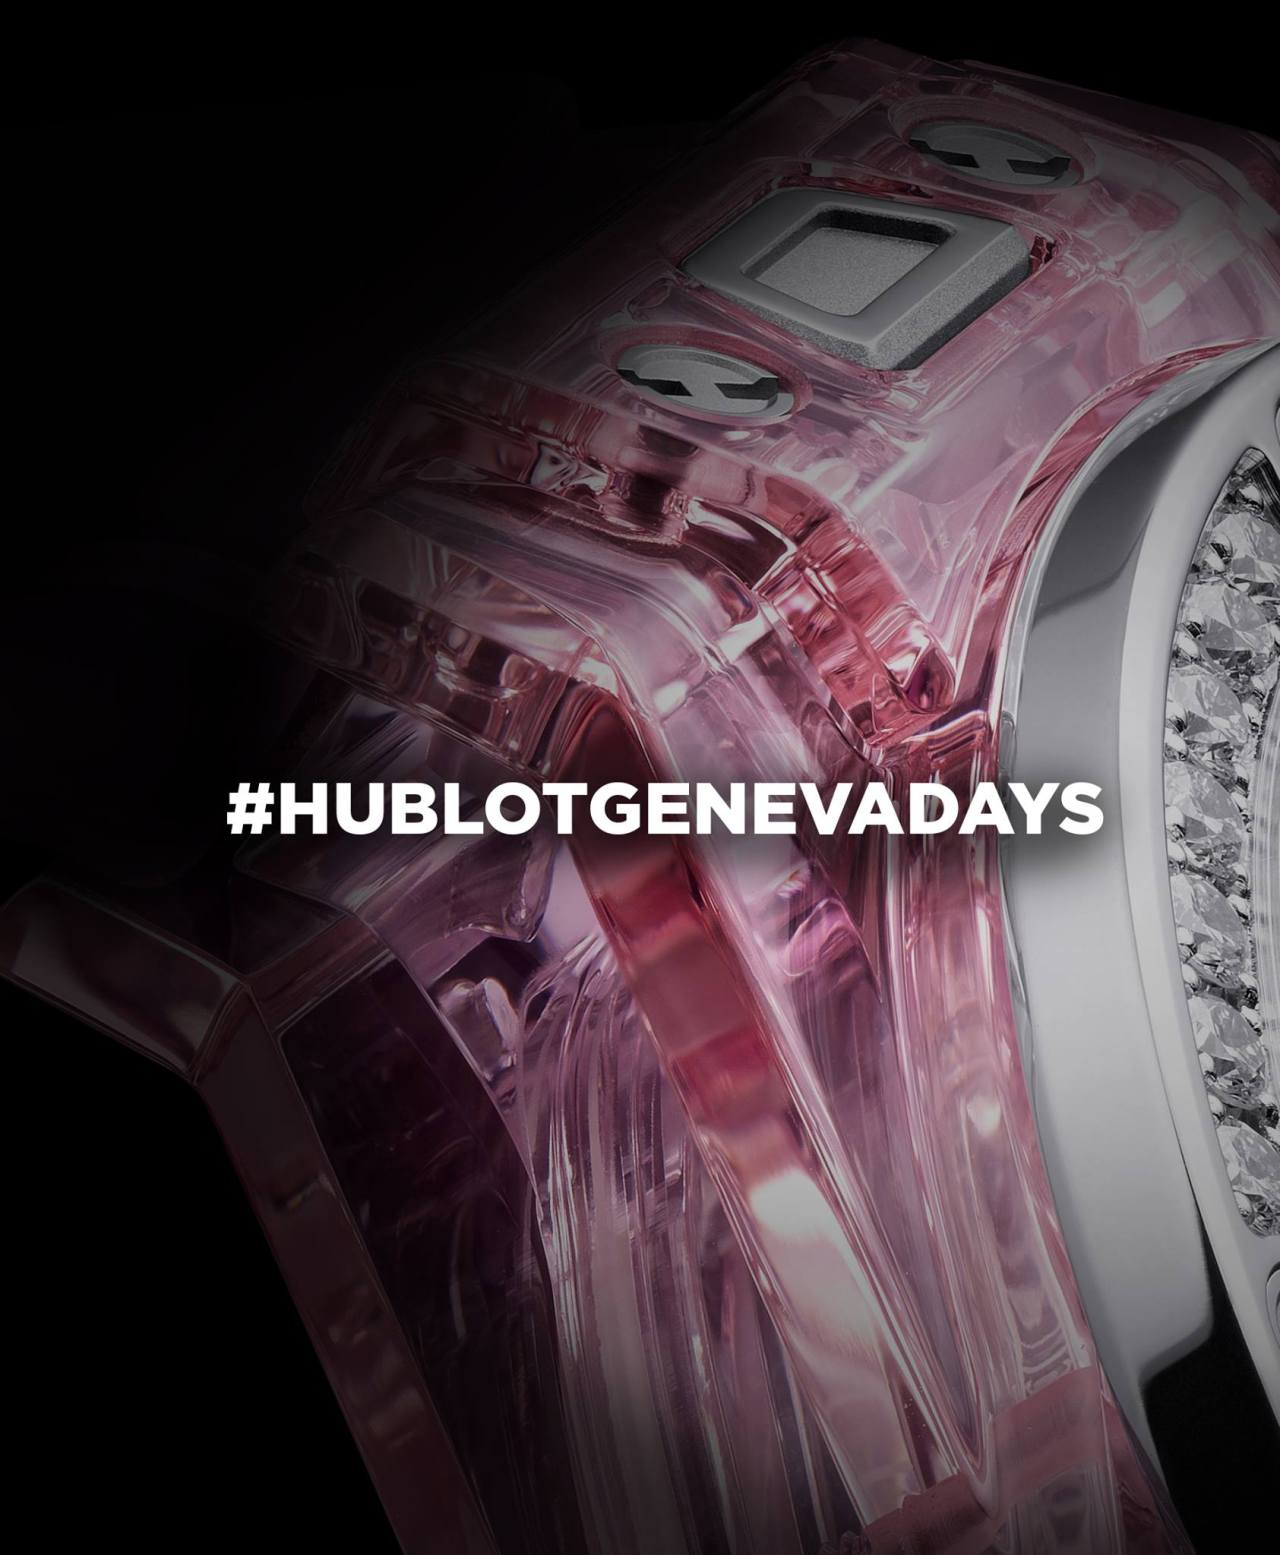 Hublot @ Geneva Days 2018